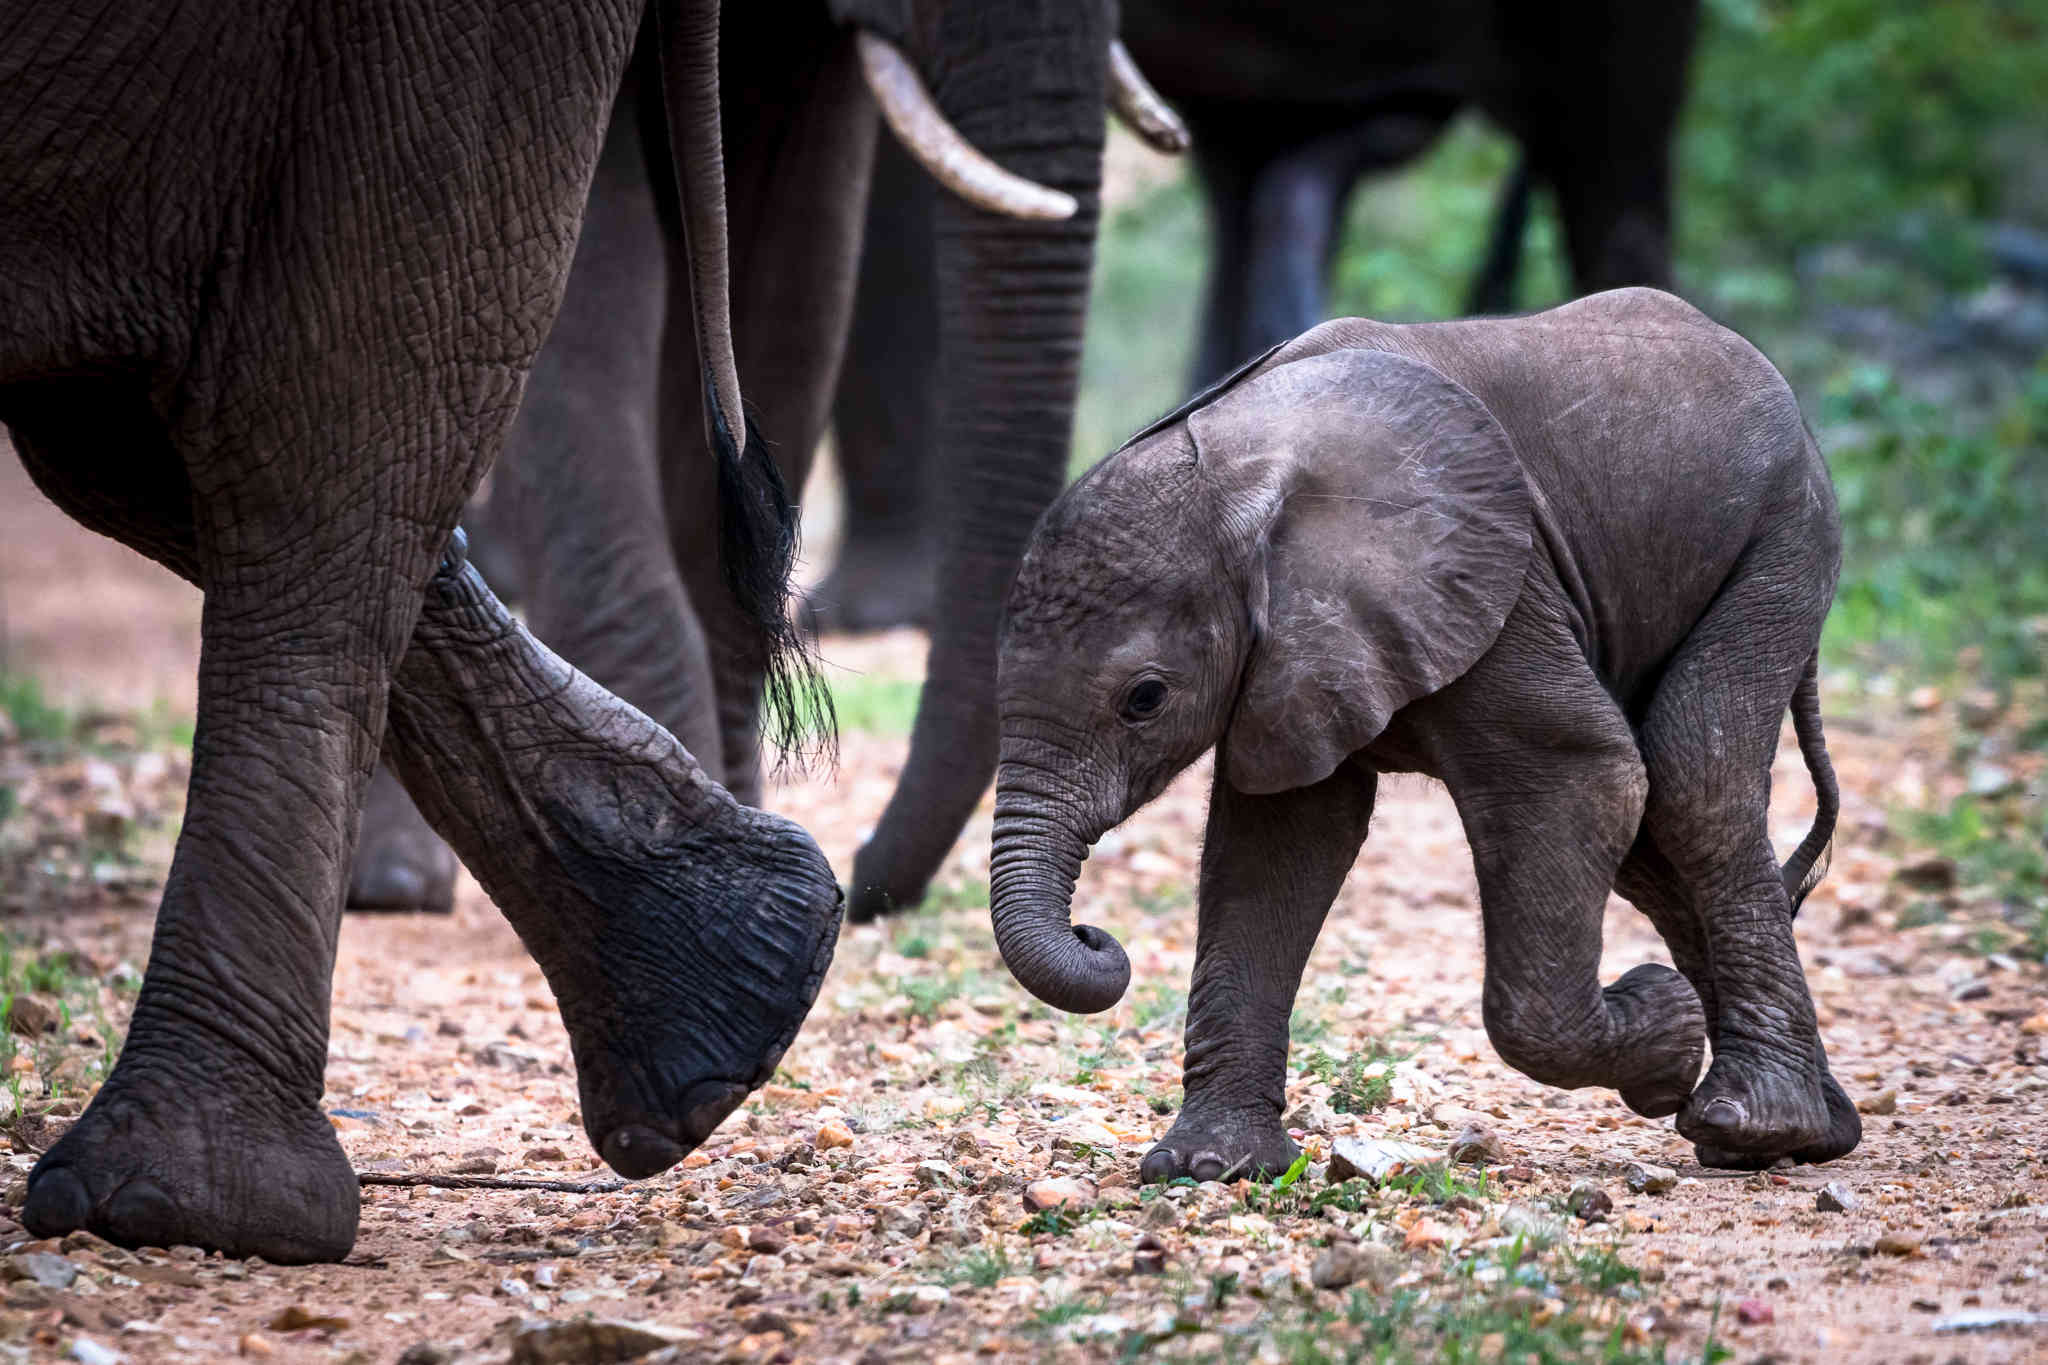 Baby elephant walking with its mom